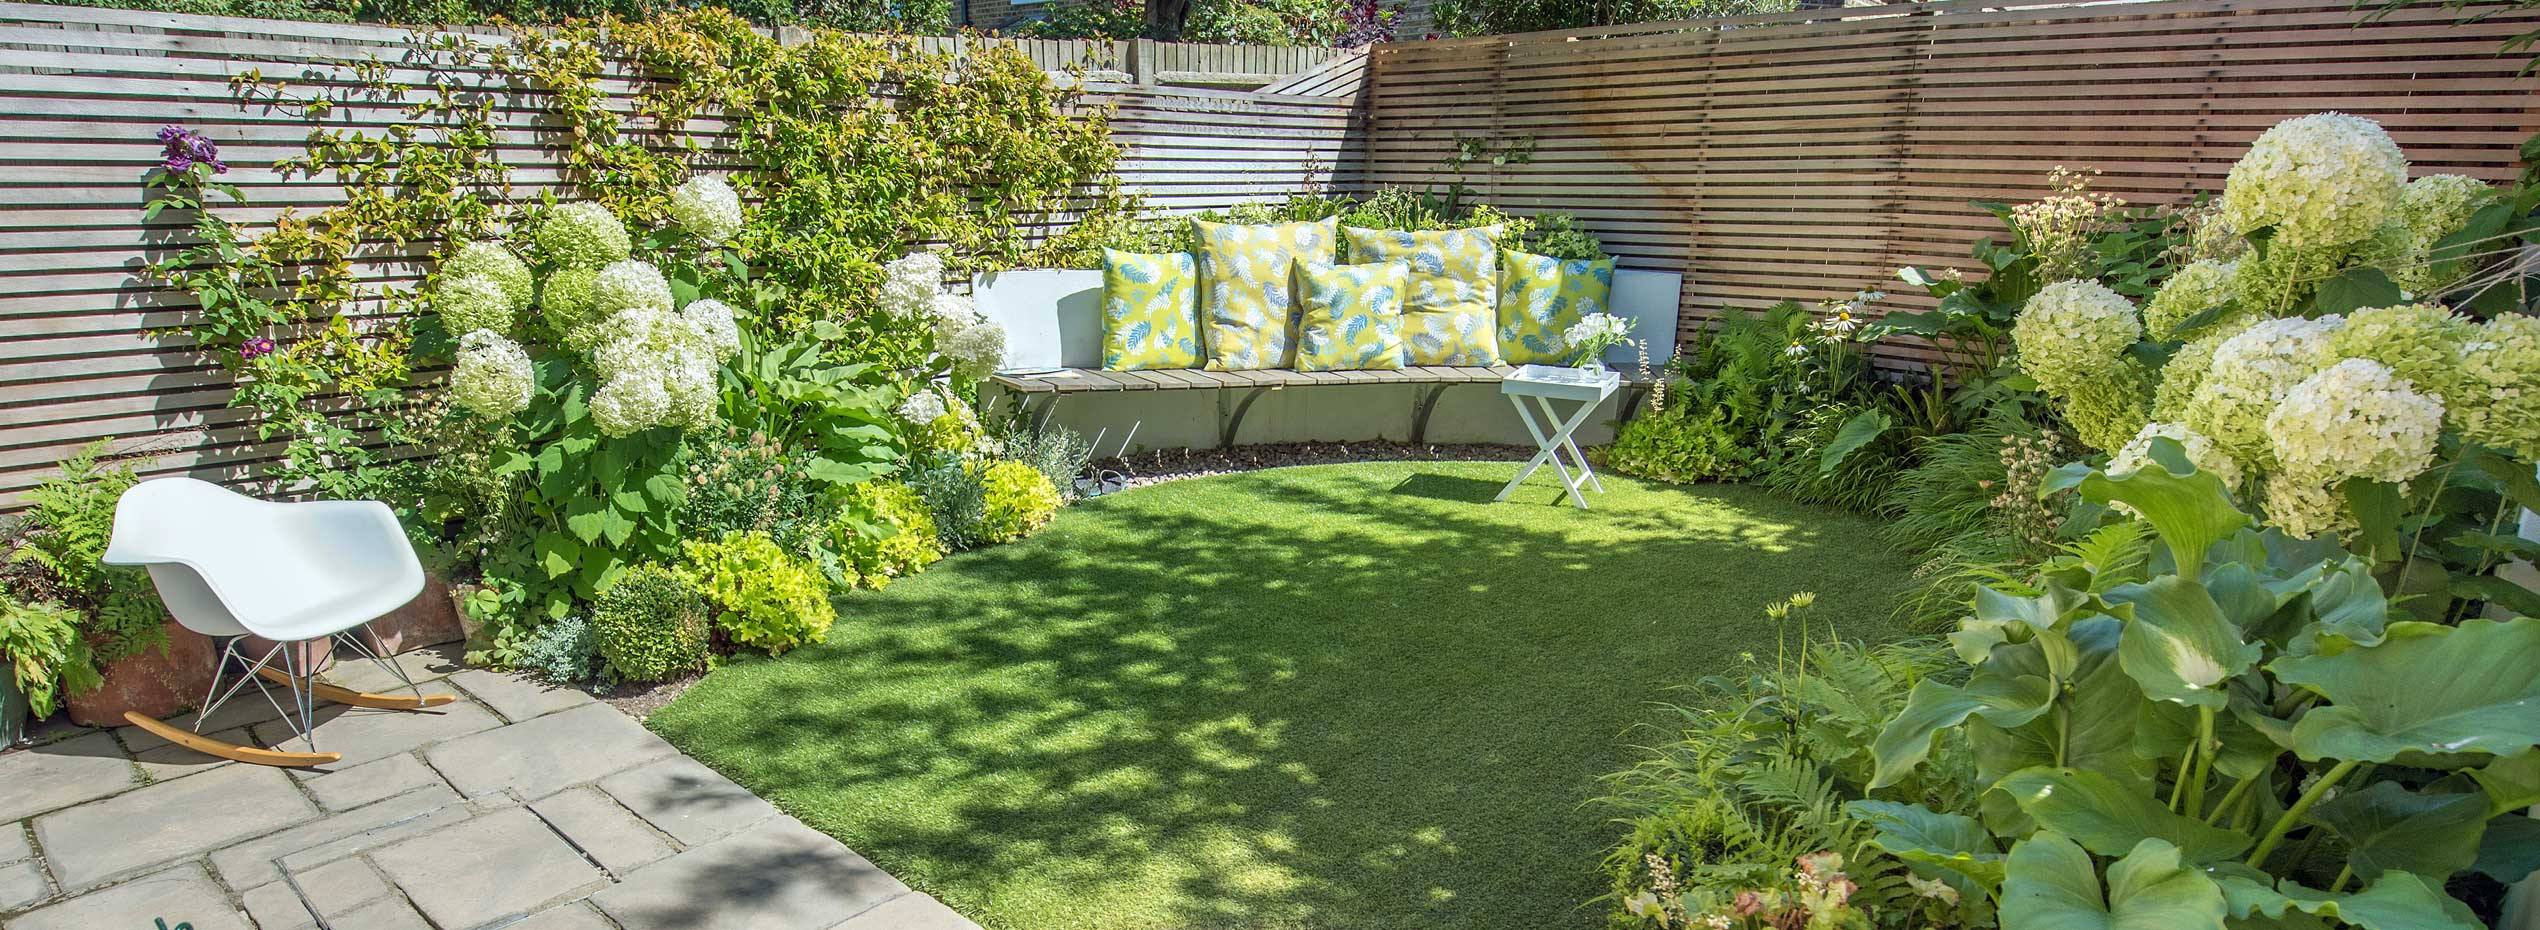 Kate eyre garden design london dynamic garden designer for The garden design team newark